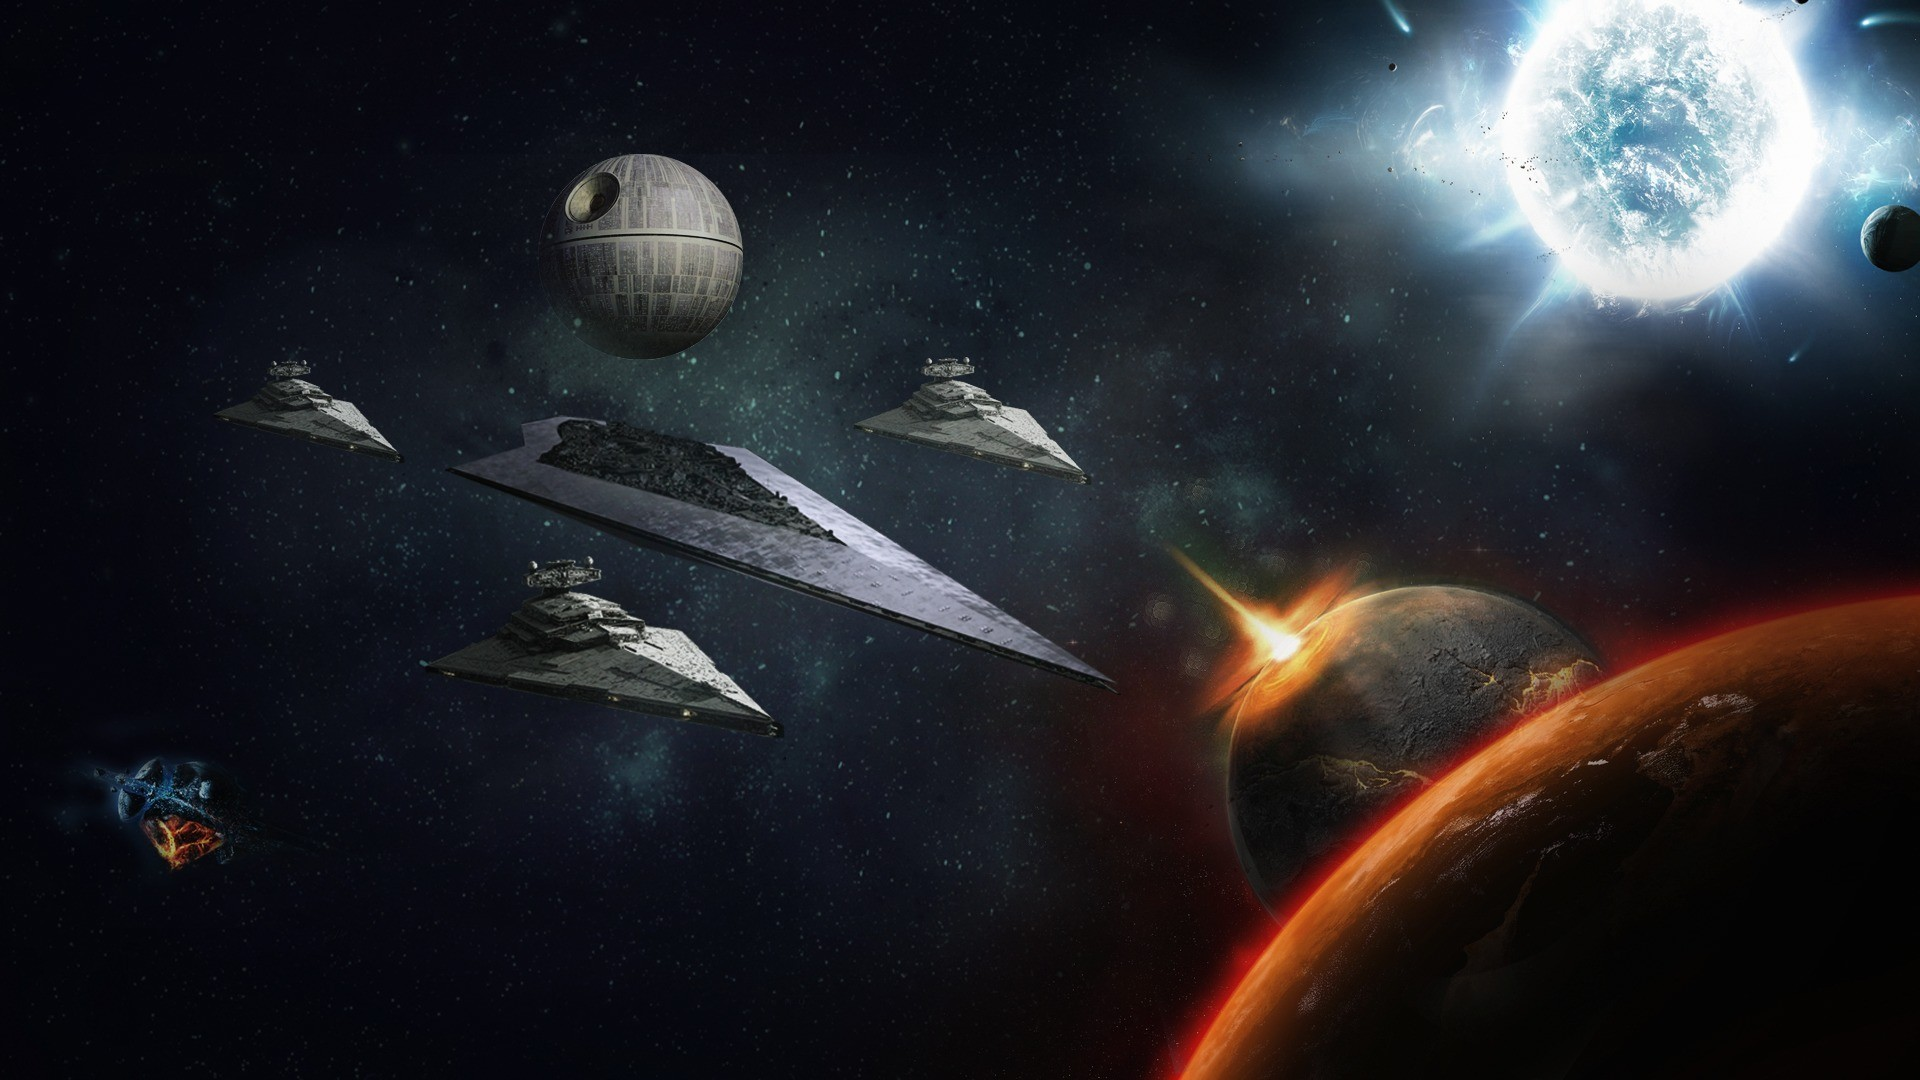 1920x1080 Star Wars, death star, fantasy, game, planet, space, starship,